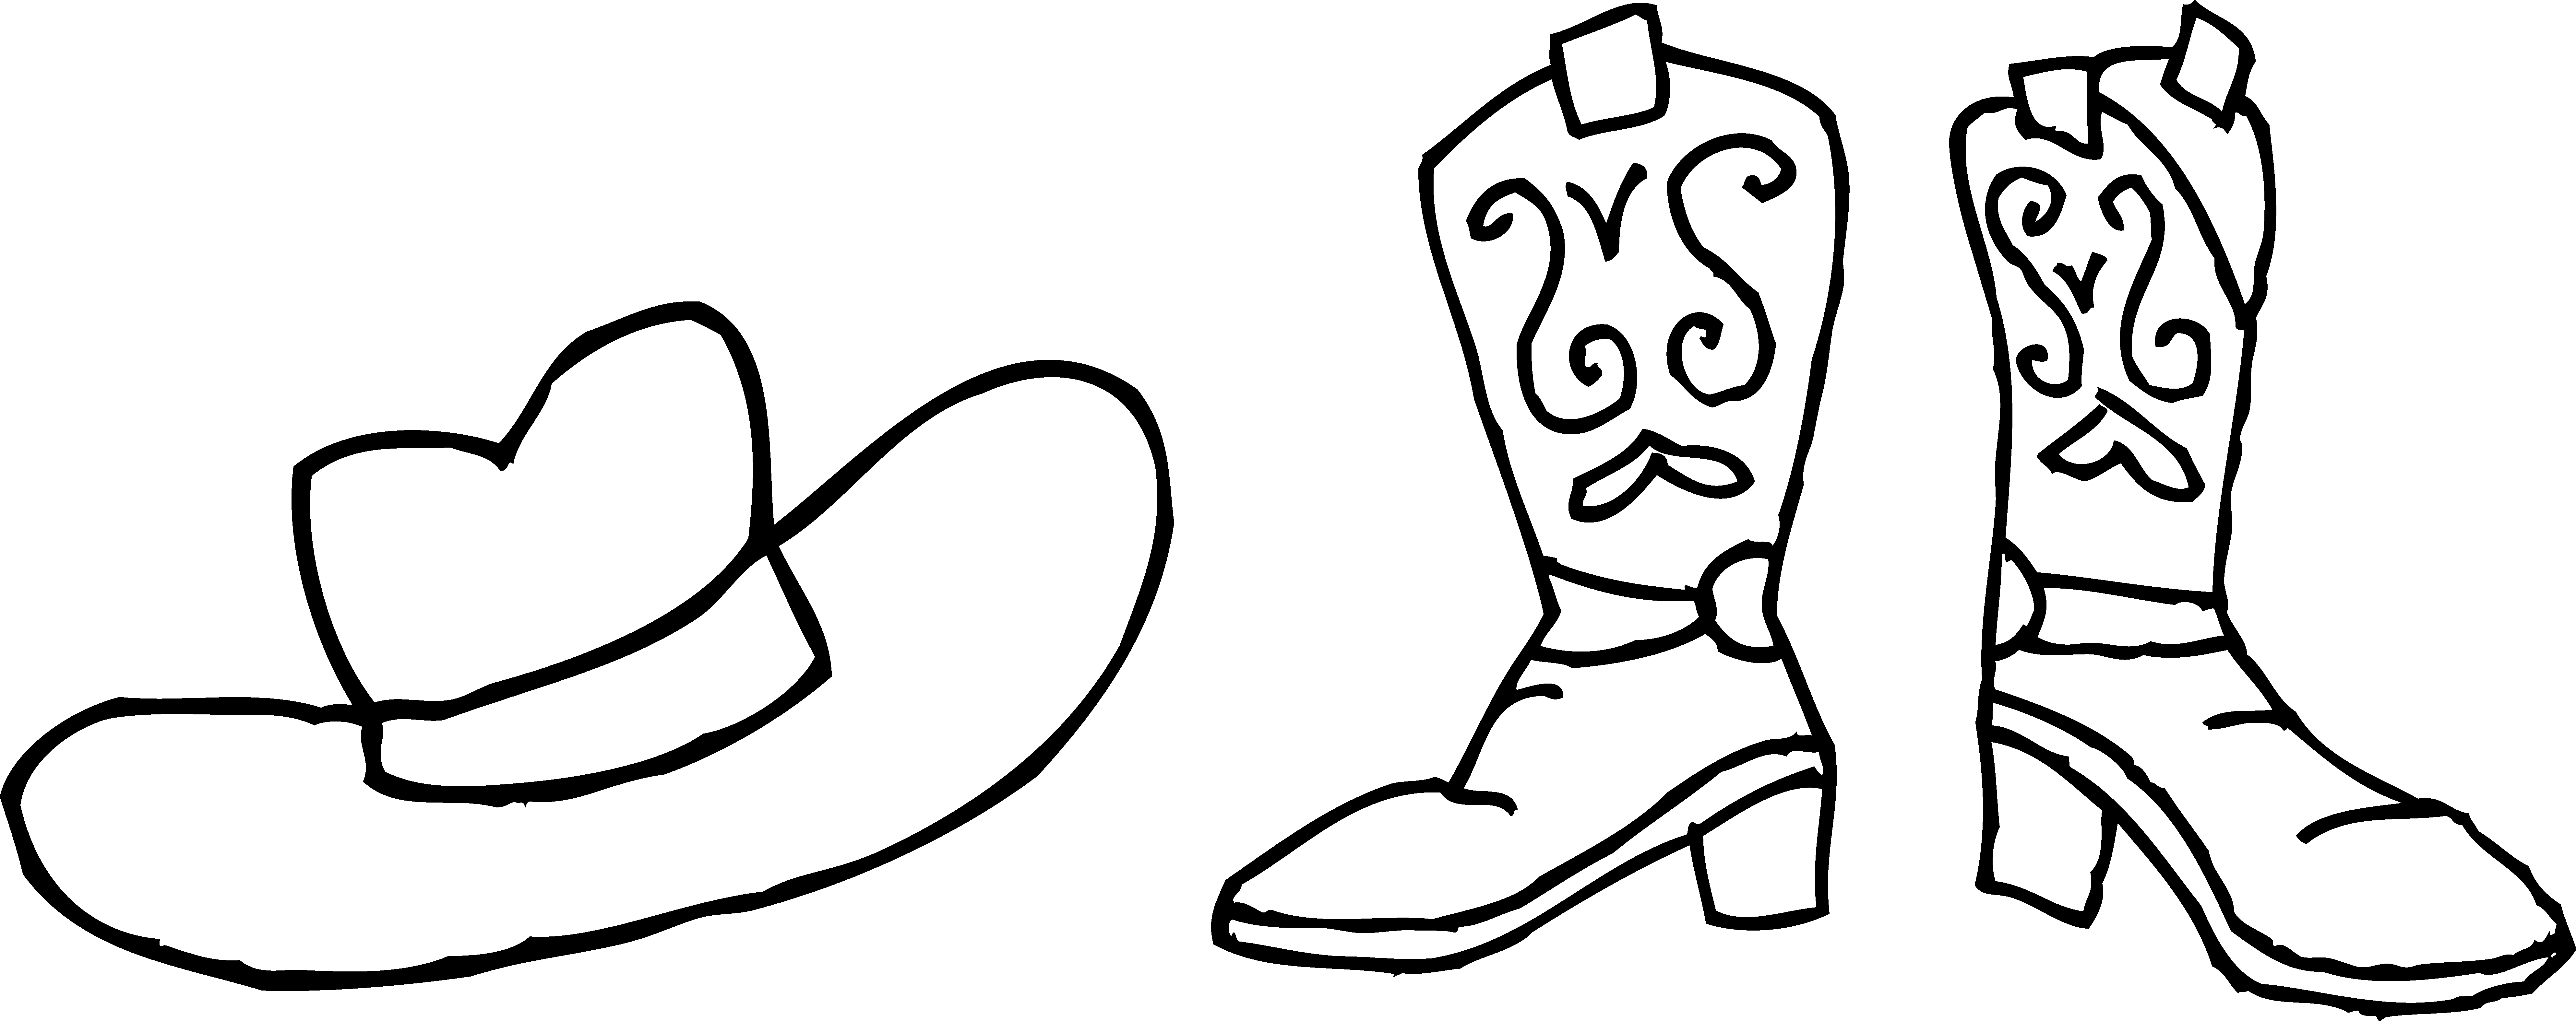 Cowboy boots clipart black and white clipart panda for Cowboy boots coloring pages to print